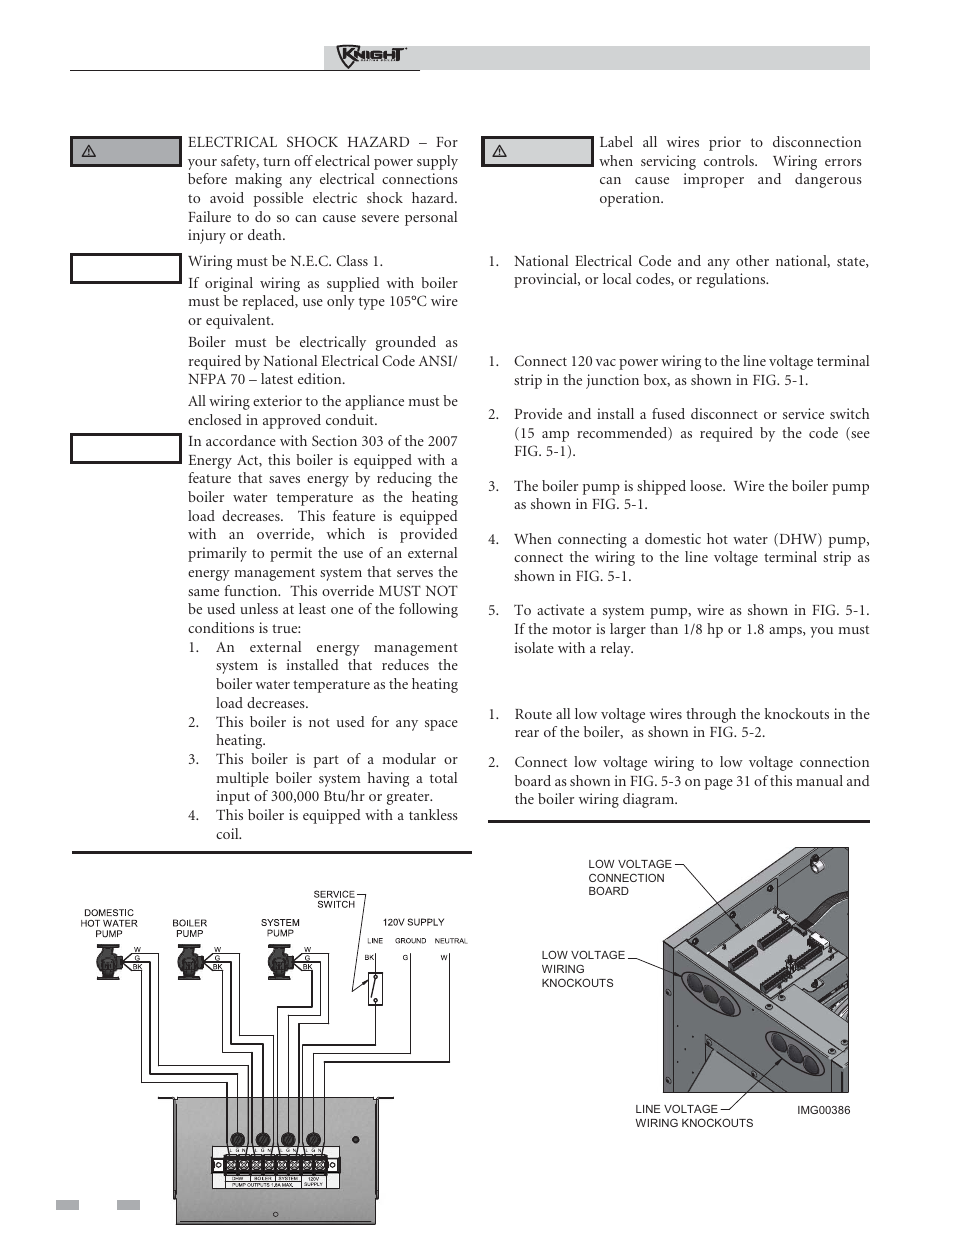 Field Wiring Installation Must Comply With Line Voltage Outdoor Low Diagrams Connections Lochinvar Knight Boiler 151 286 User Manual Page 28 56